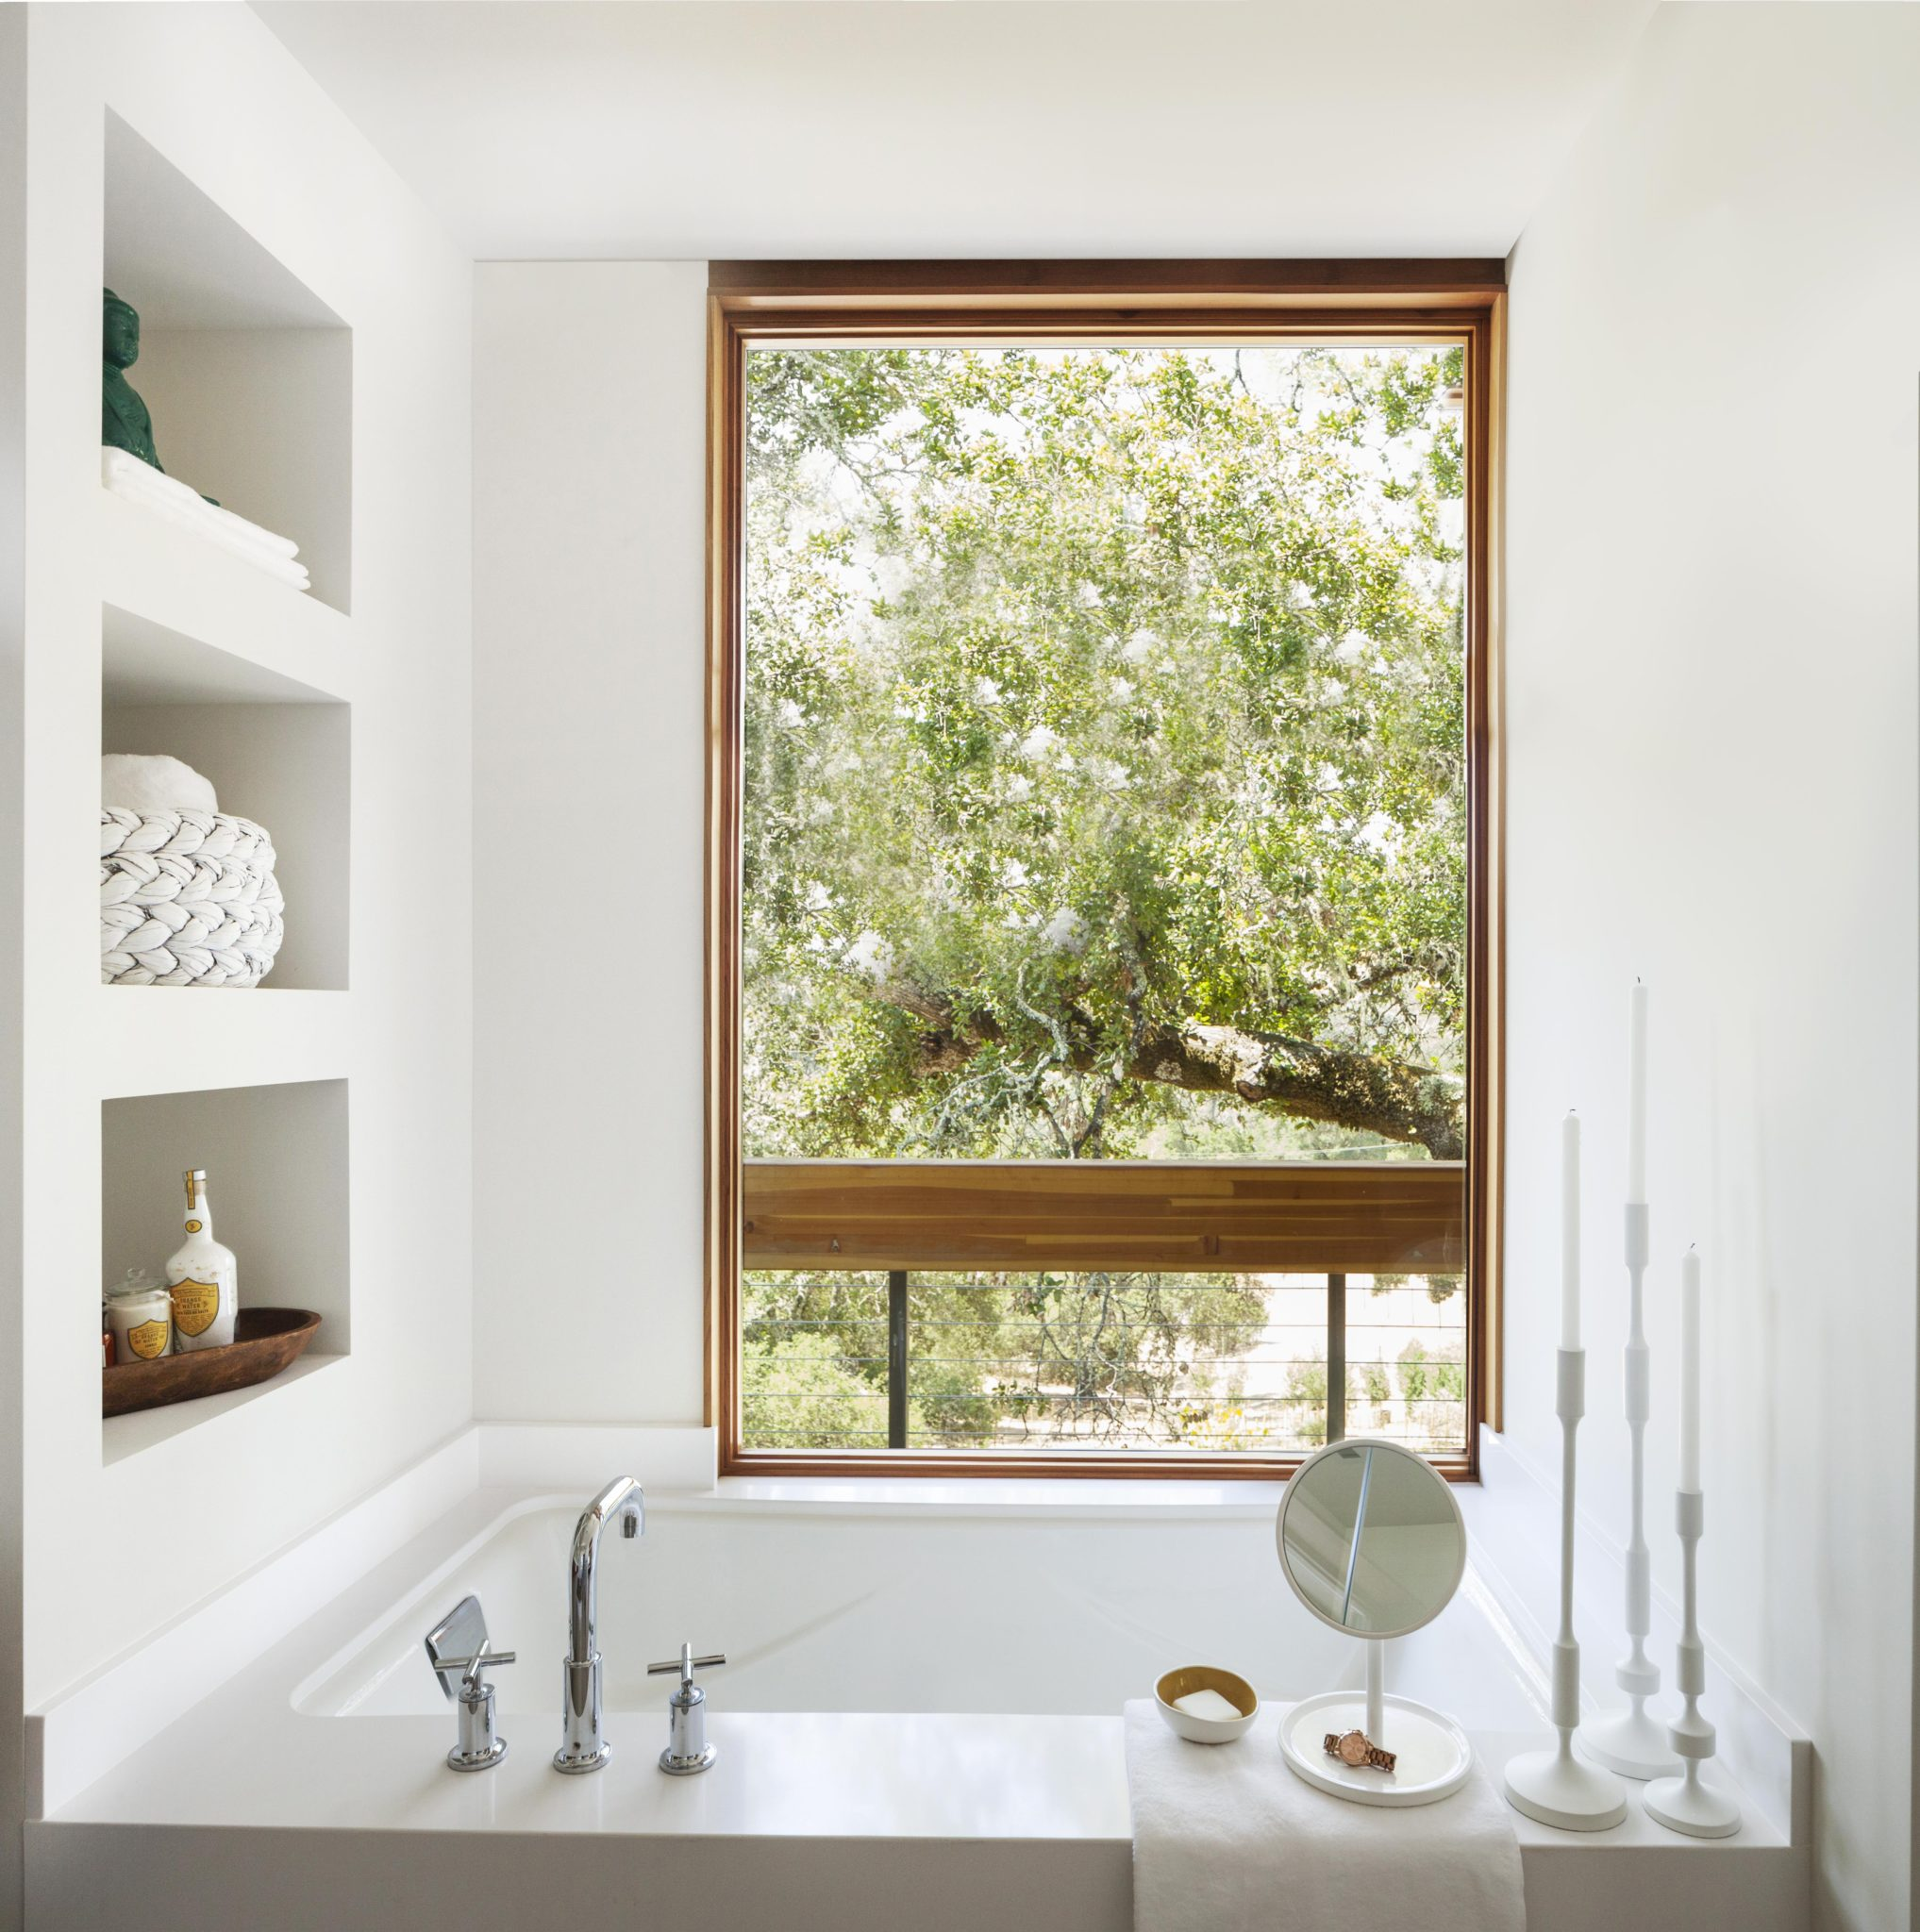 A tall window near the tub brings the outdoors into the bath. The faucets are from Kohler, and the candlesticks are from CB2.